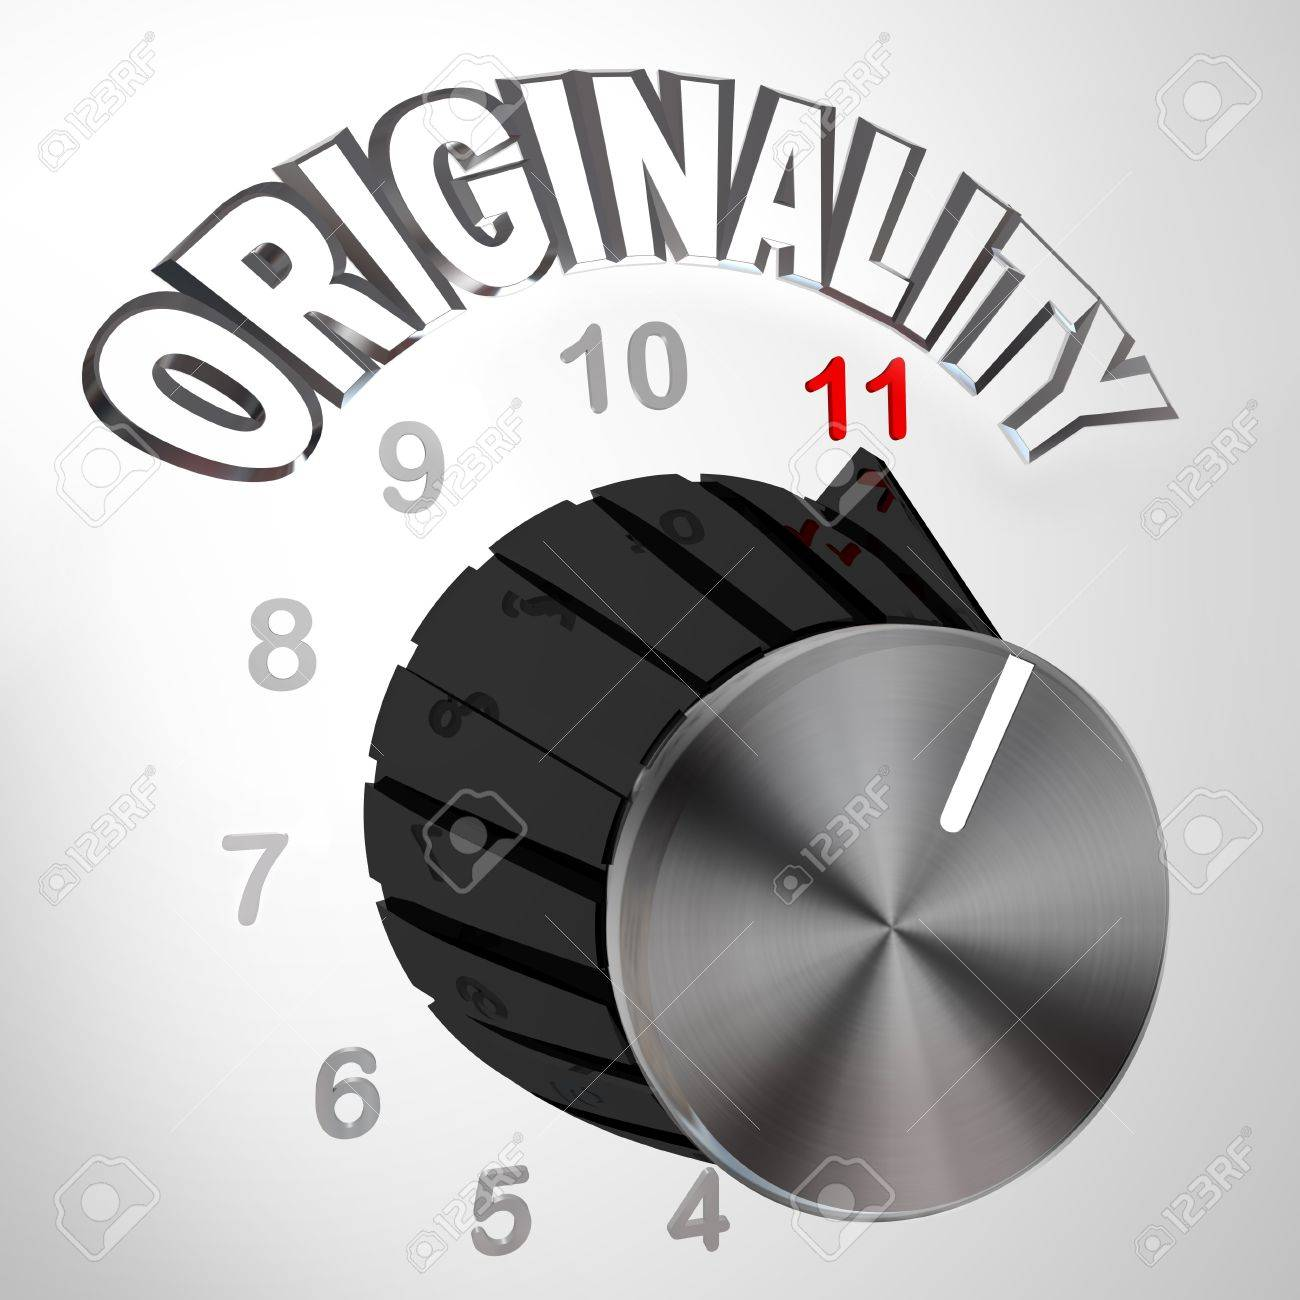 The Originality dial or knob is turned all the way to 11 surpassing and exceeding the normal maximum level of unique thinking and innovation in coming up with new ideas to solve a problem Stock Photo - 10015038